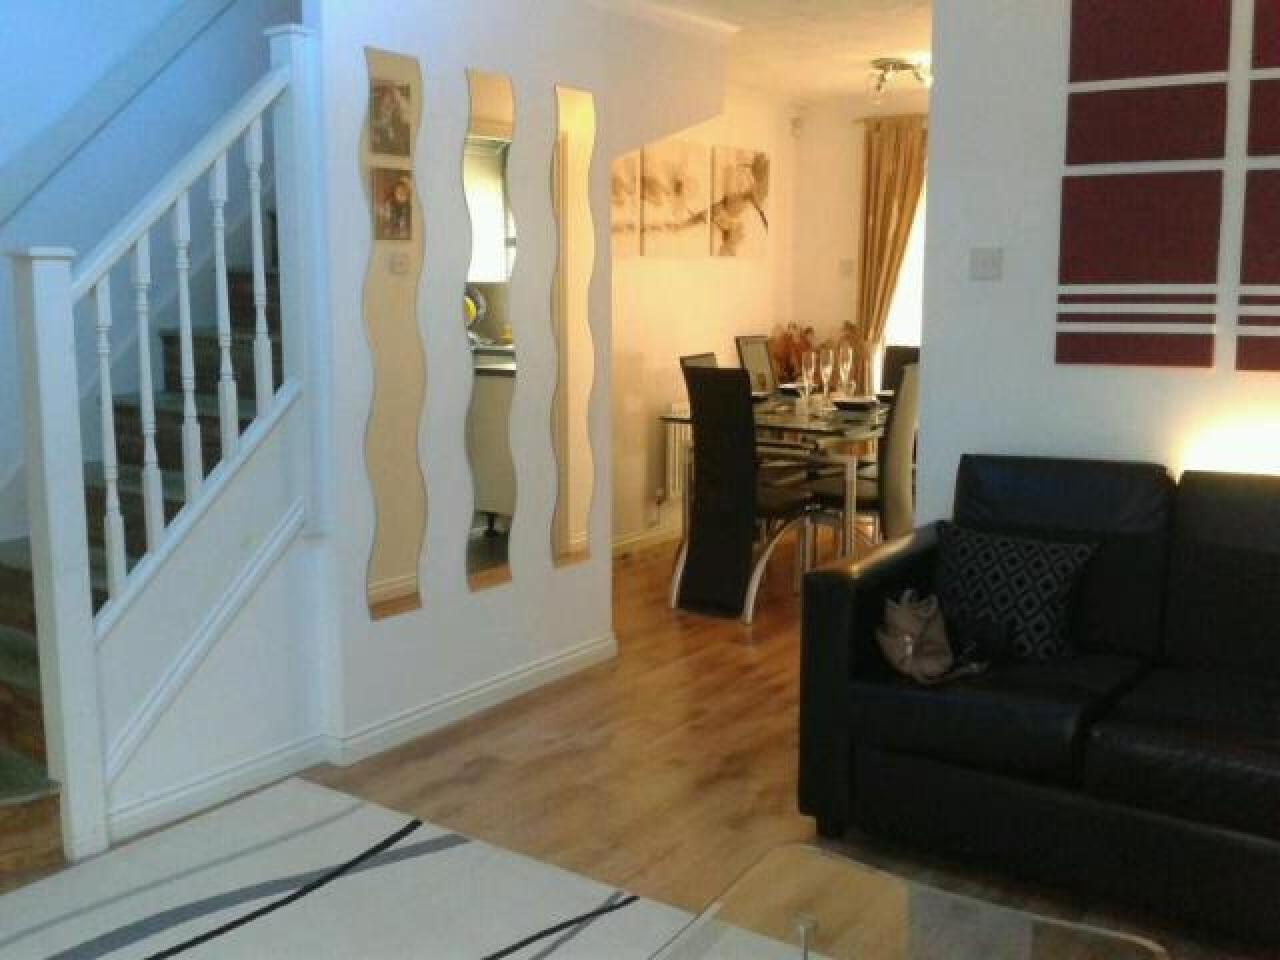 3 Bed House, Keel Close Barking, IG1 1 650 £ — Available Now - 1